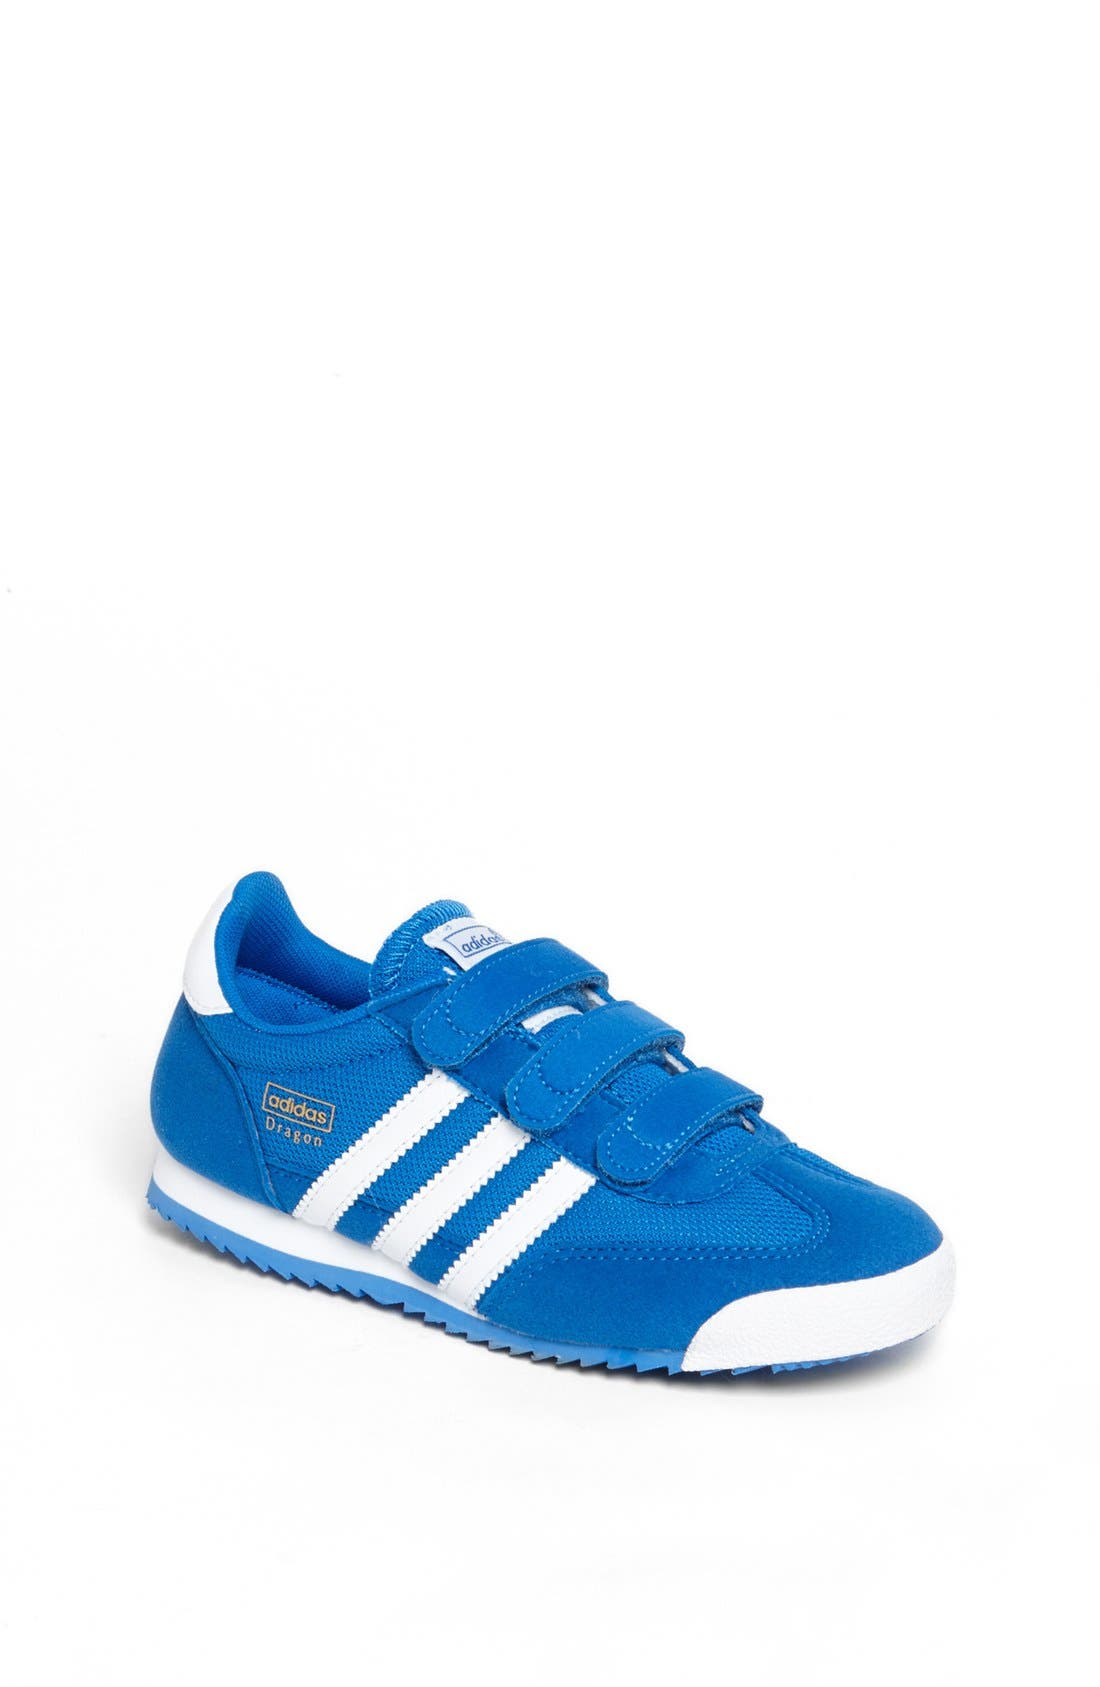 Main Image - ADIDAS DRAGON CF LK/BK BOYS